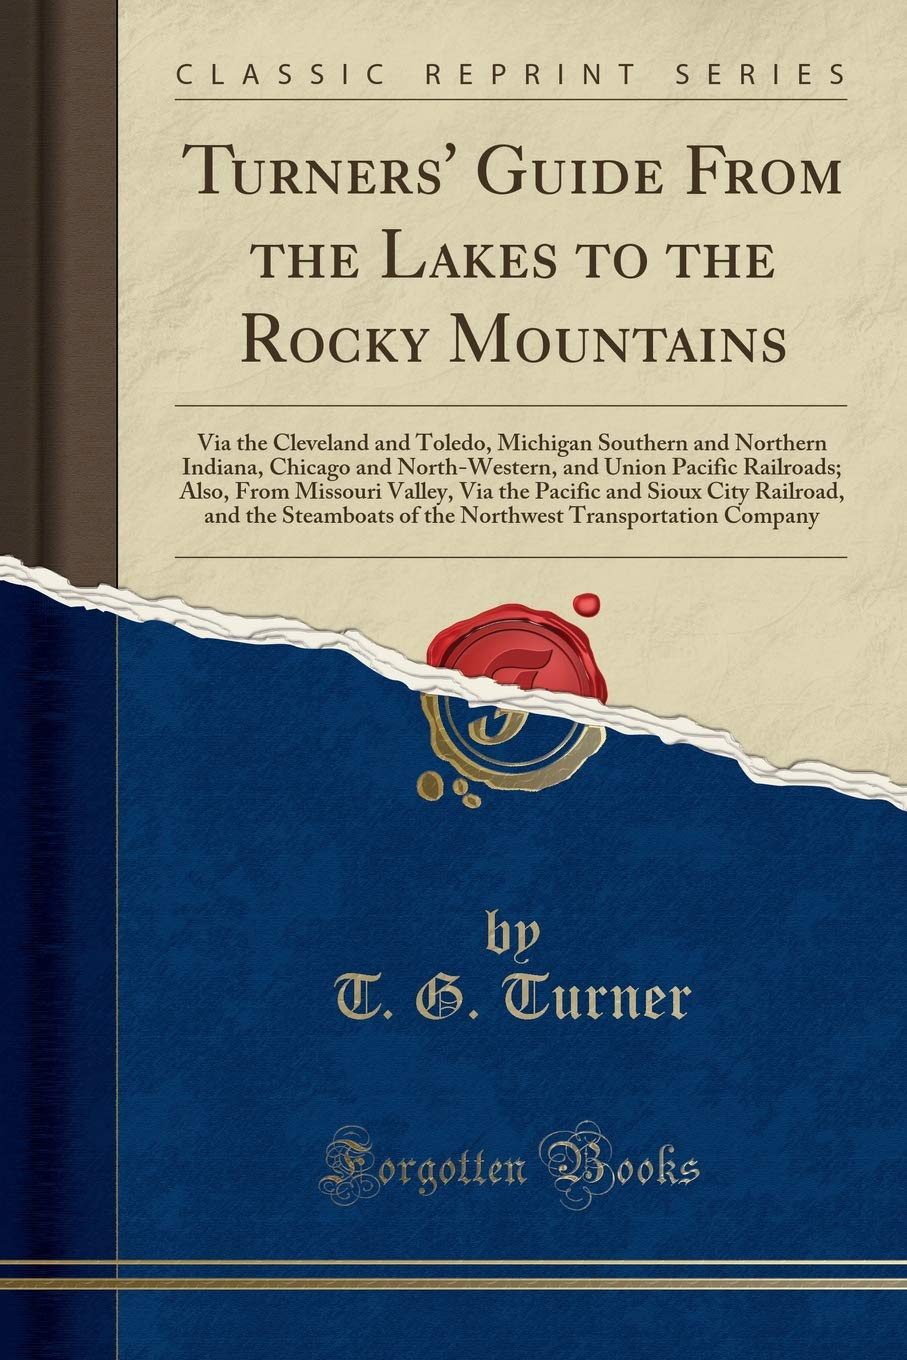 Download Turners' Guide From the Lakes to the Rocky Mountains: Via the Cleveland and Toledo, Michigan Southern and Northern Indiana, Chicago and North-Western, ... the Pacific and Sioux City Railroad, and th pdf epub